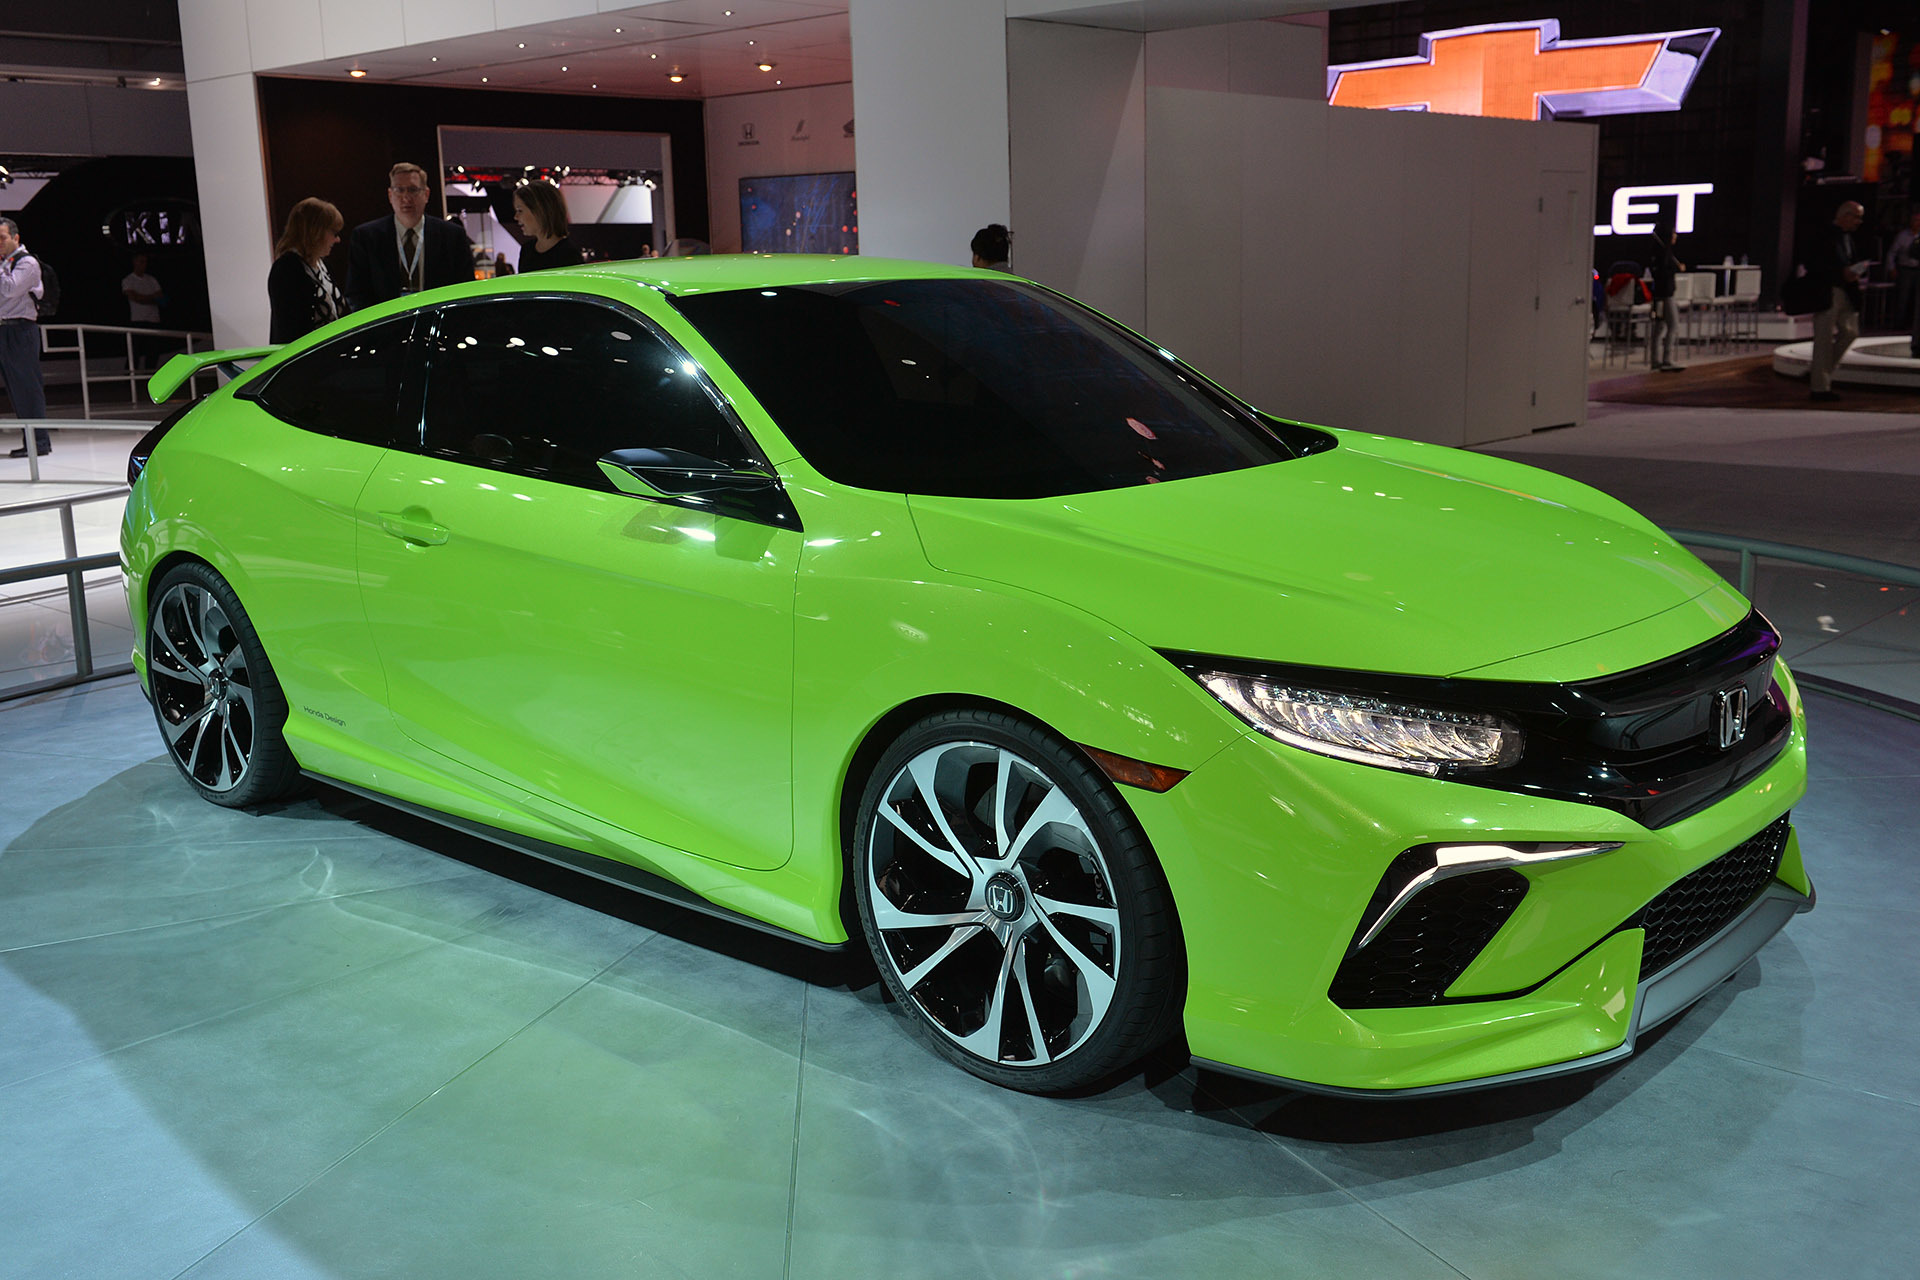 The 10th Generation Honda Civic Revealed at the New York Auto Show